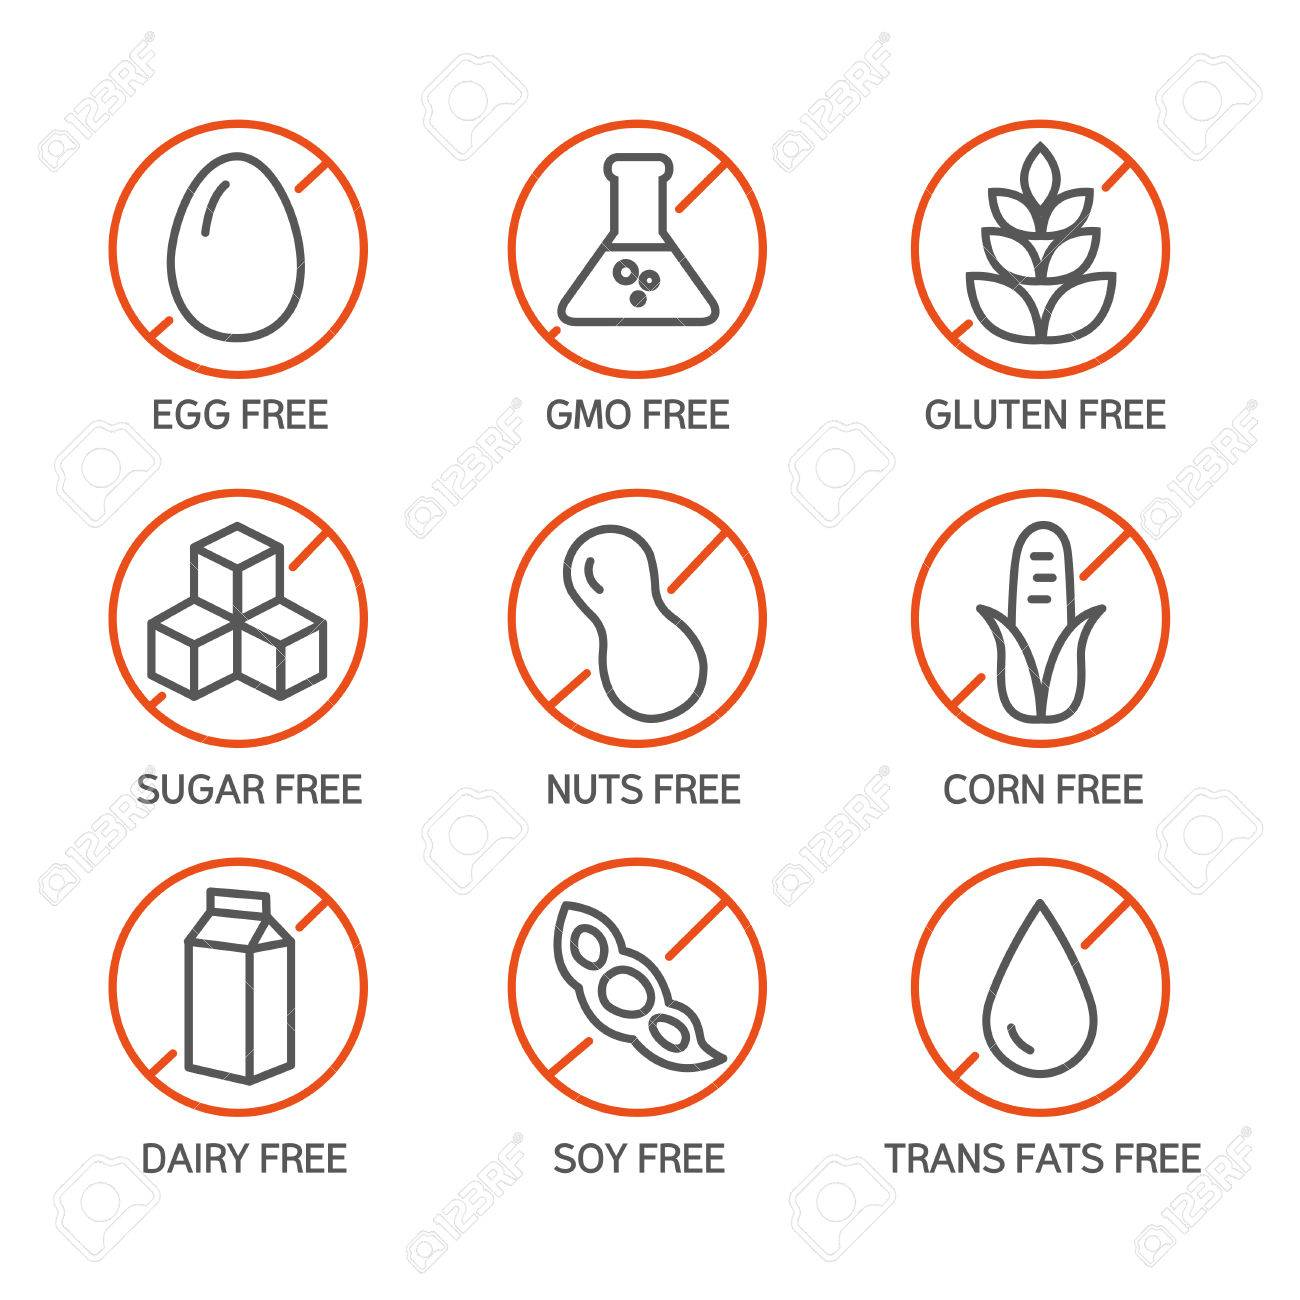 Set of food labels - allergens, GMO free products. - 50371776